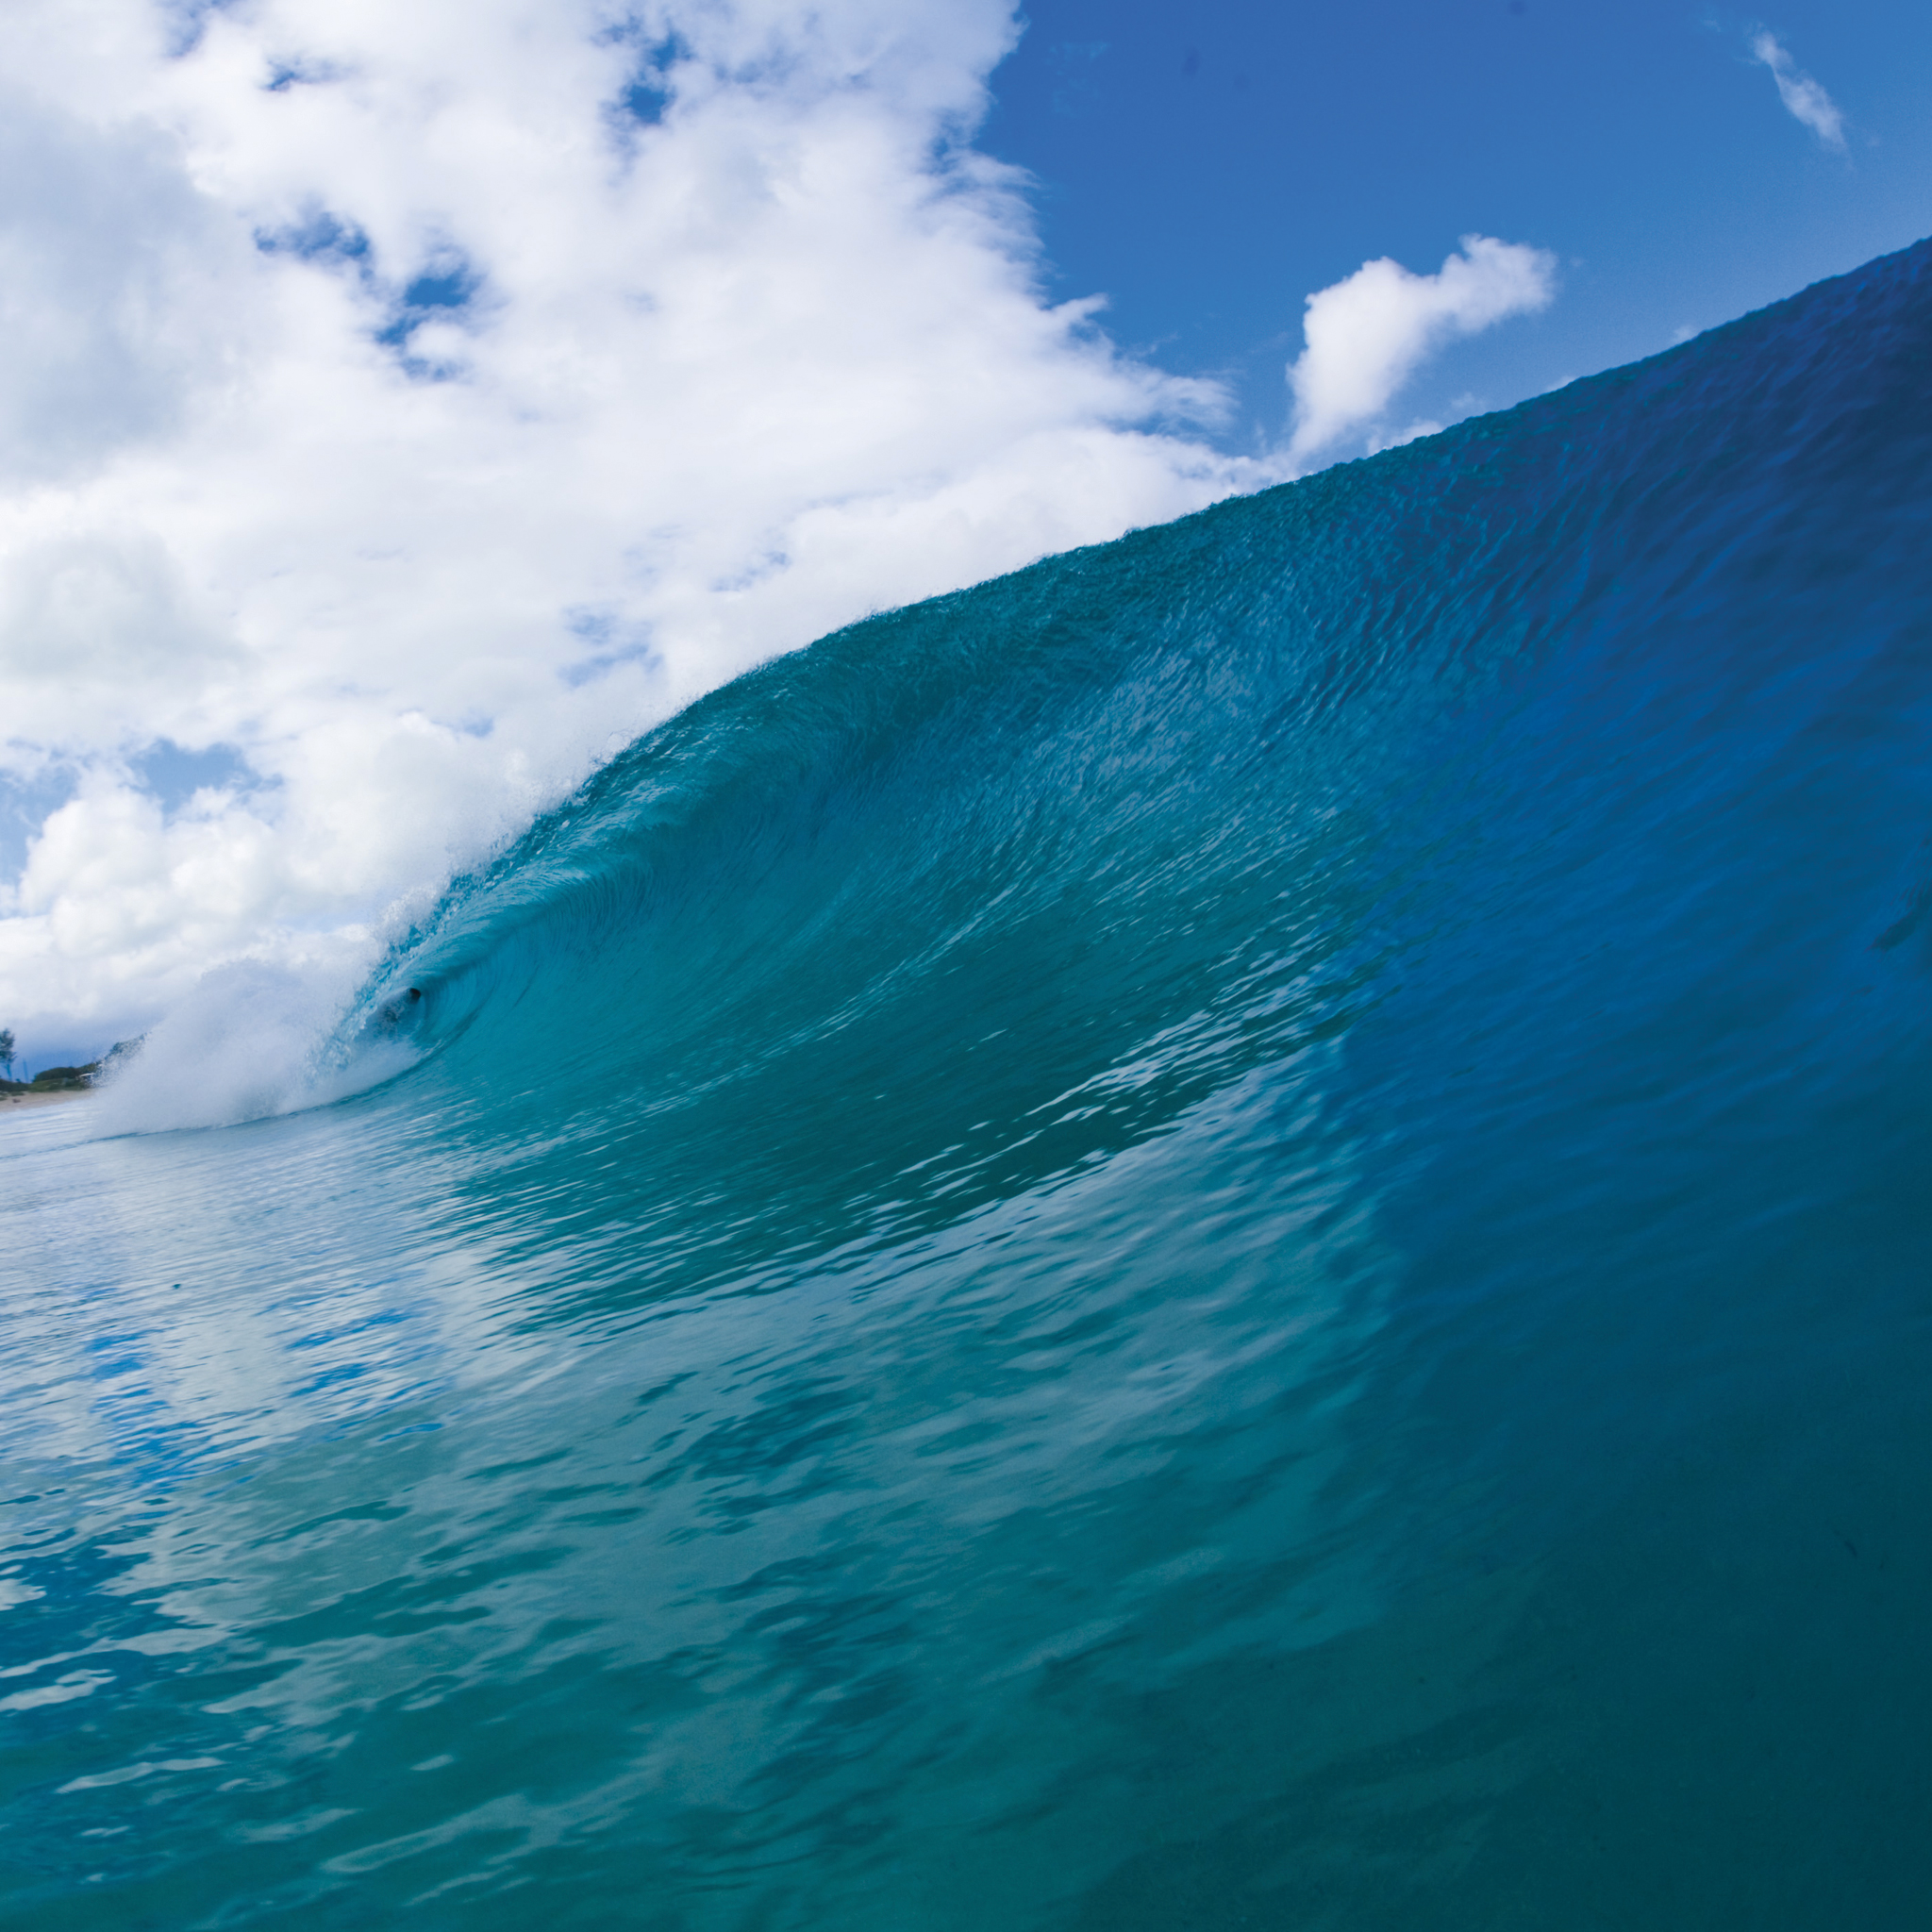 Surfer-in-Wave-3Wallpapers-iPad-Retina